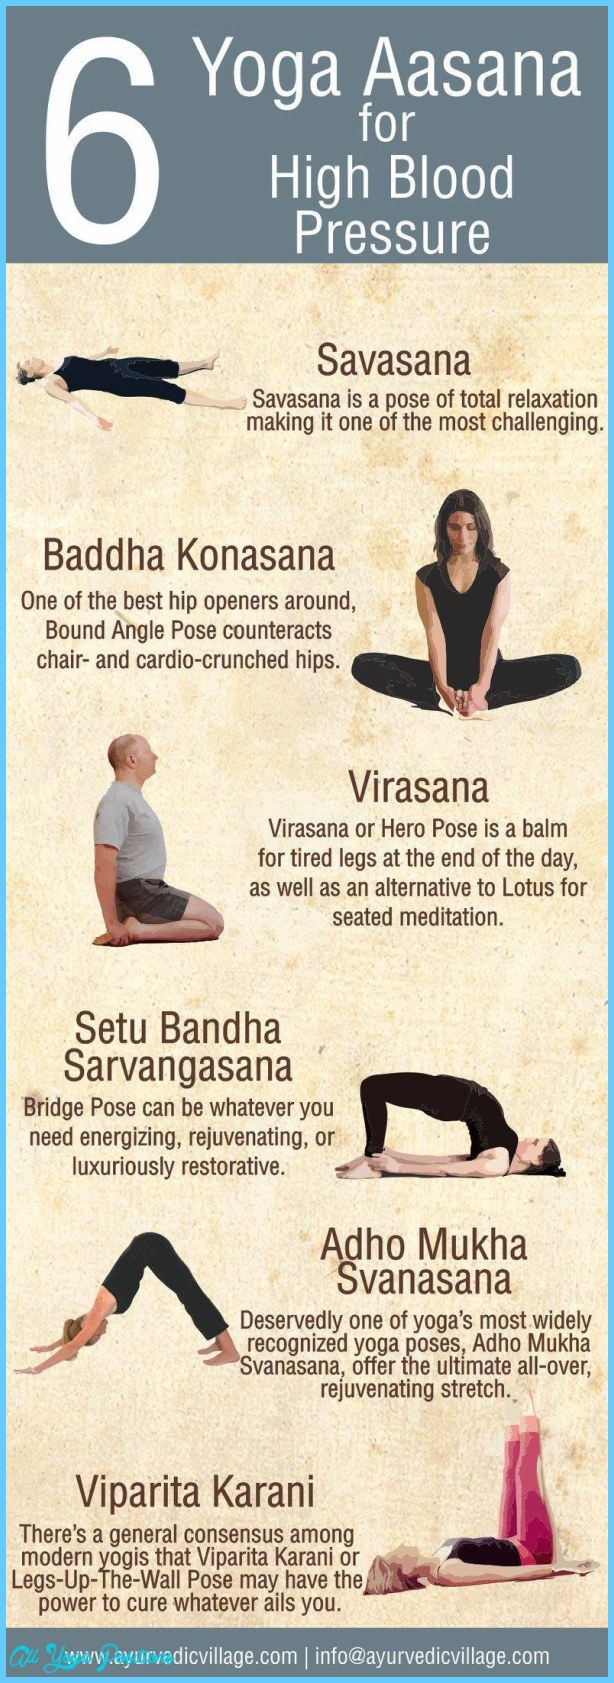 Best Yoga Poses For High Blood Pressure_8.jpg